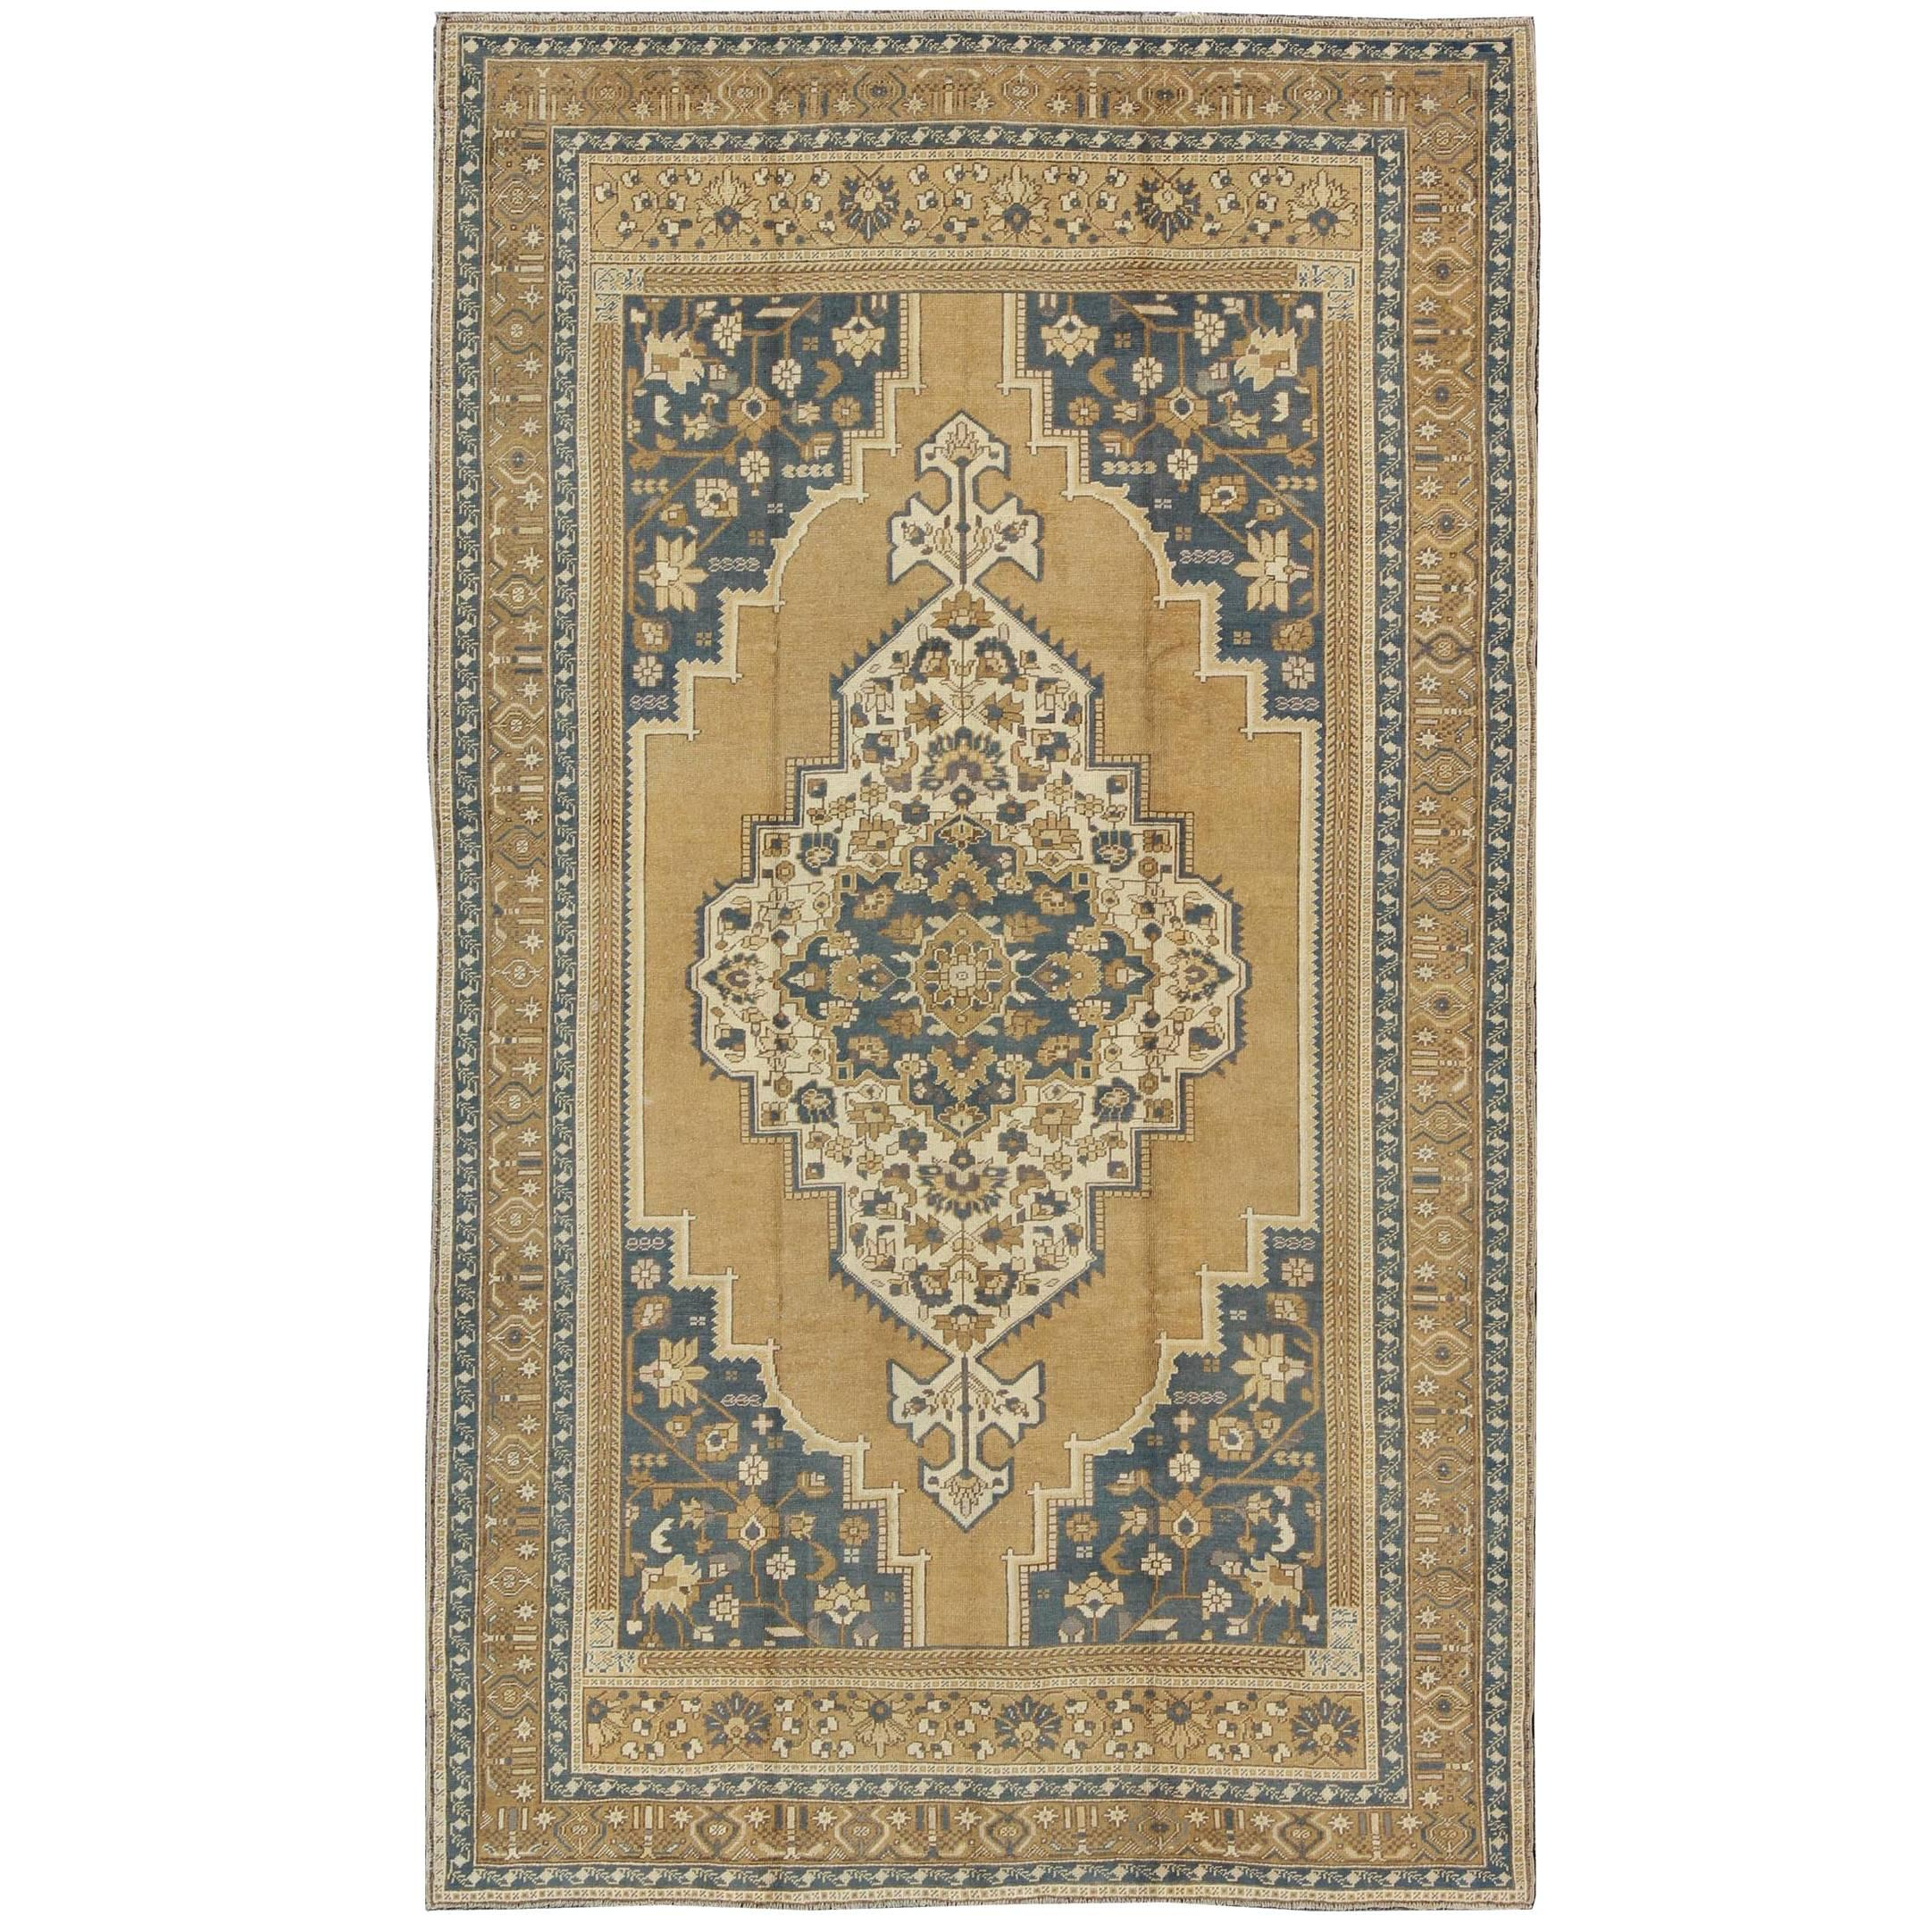 Vintage Turkish Rug in Gray Blue and Yellow tones